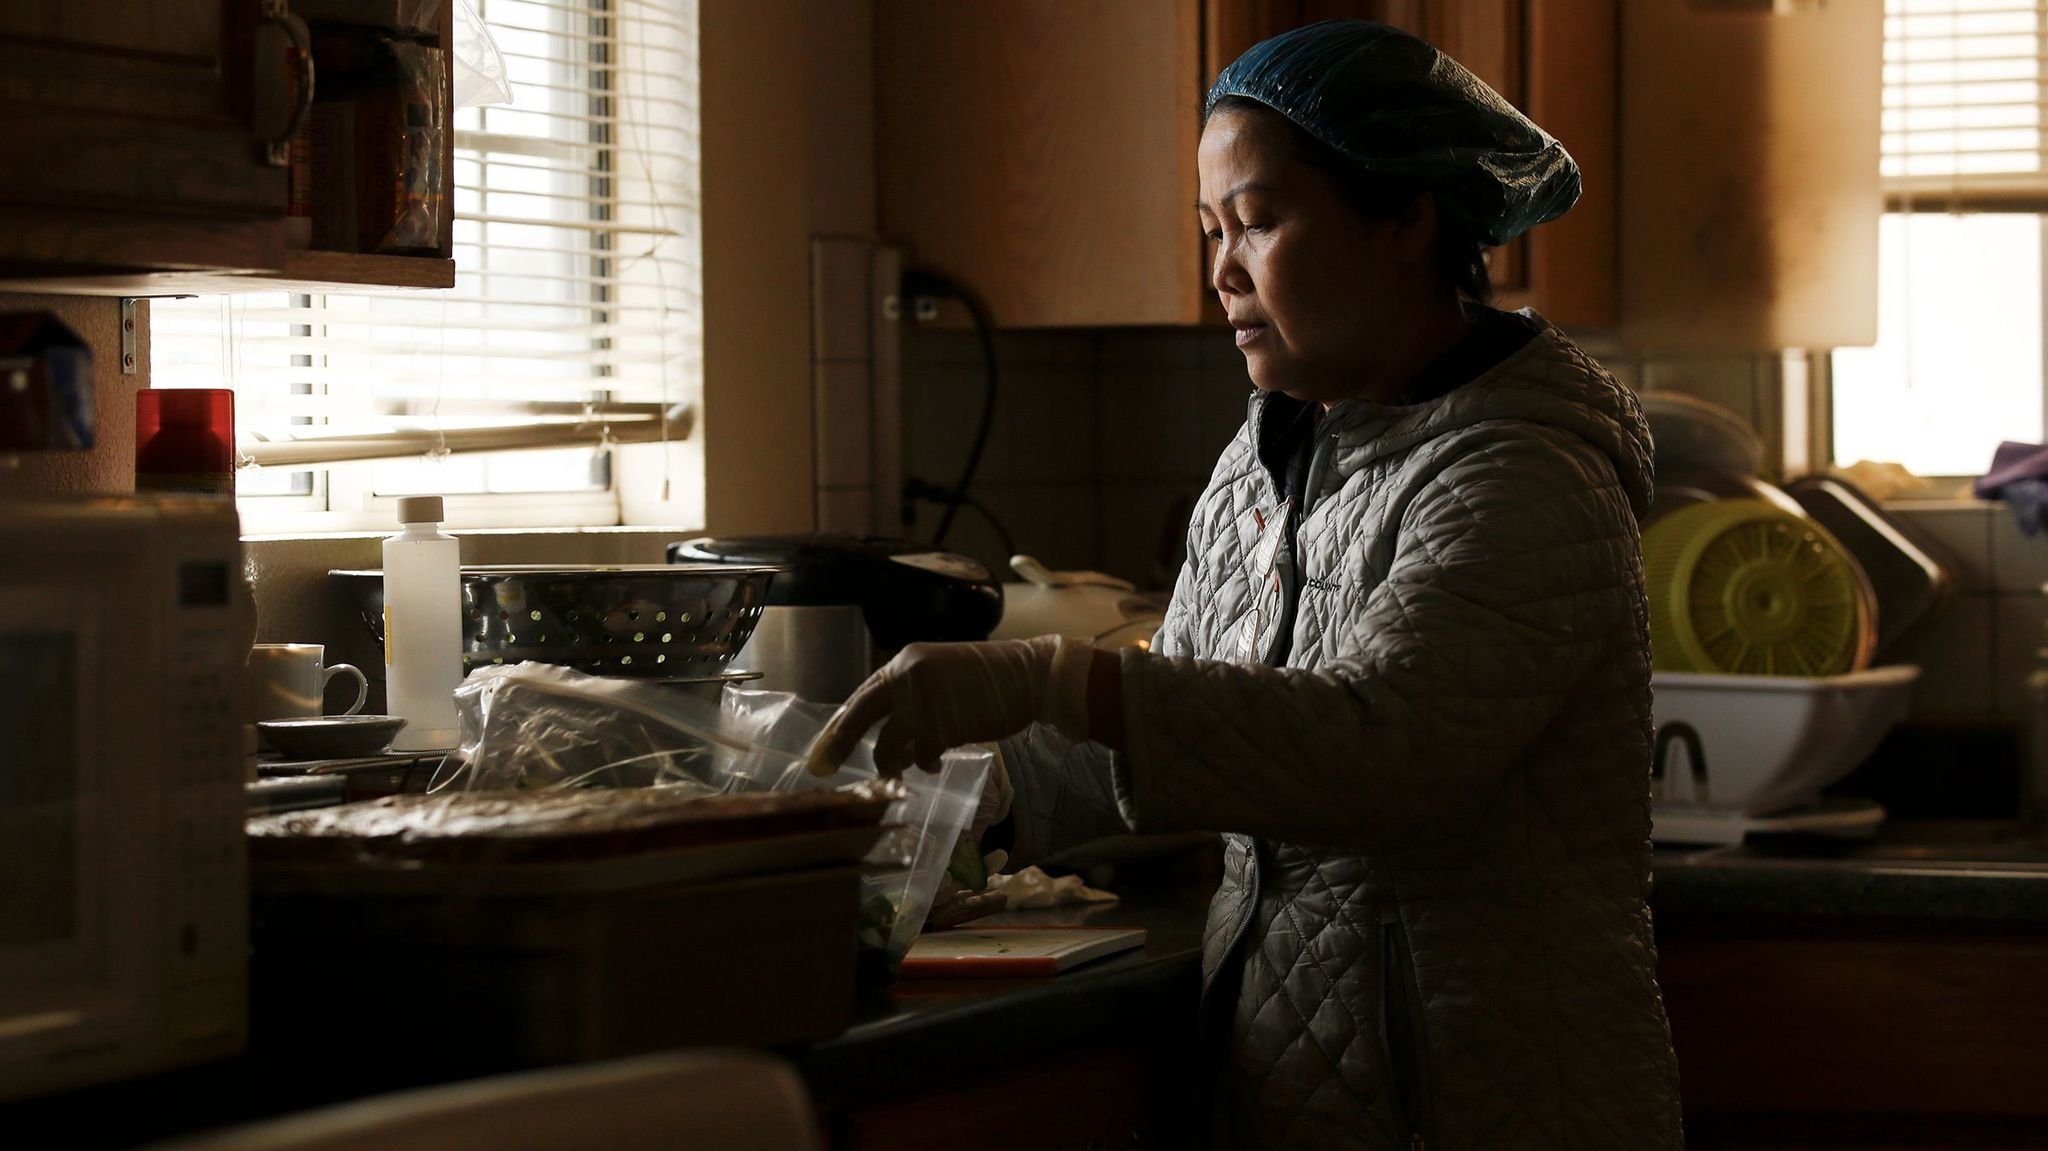 """Hue Phan is one of many cooks in Little Saigon who work long hours in their homes to provide a type of service known as """"com thang,"""" literally translated as """"monthly rice."""""""